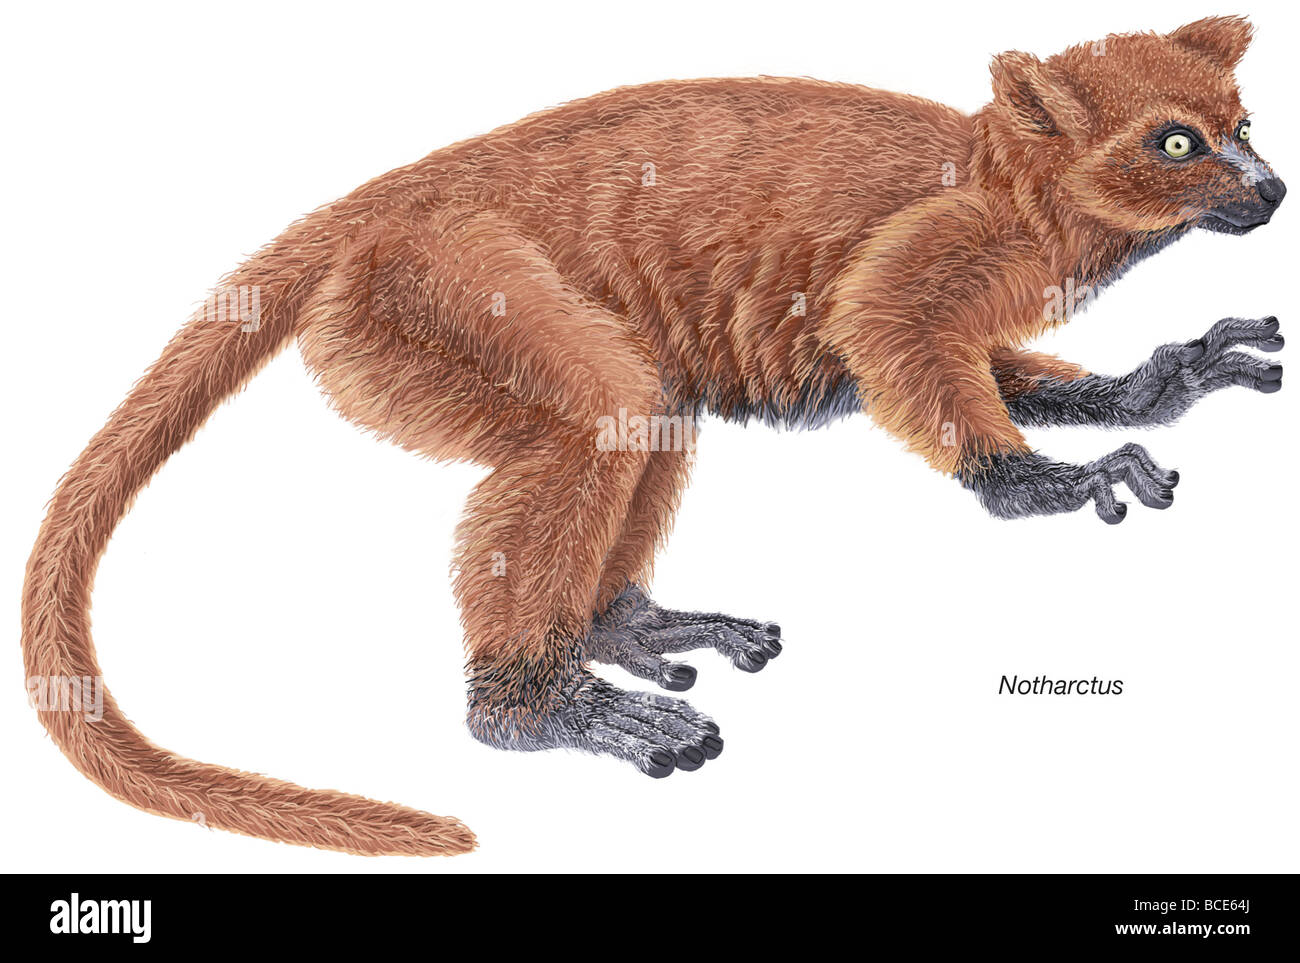 Notharctus, an extinct genus of small primates from the Eocene Epoch that shares many similarities with modern lemurs. - Stock Image